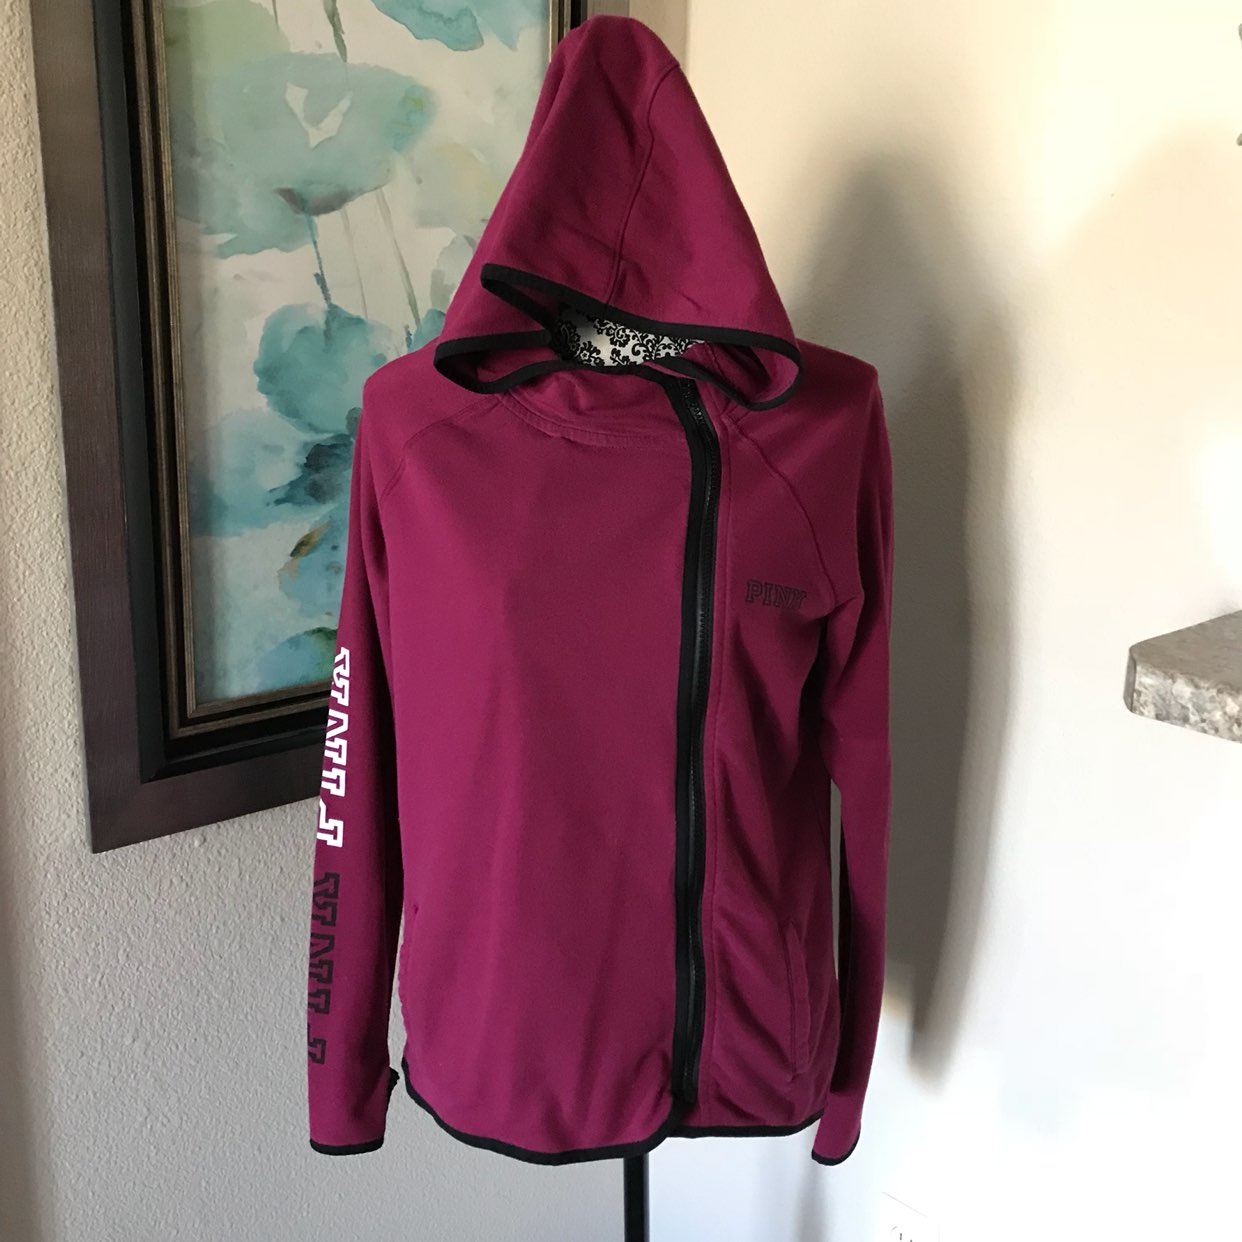 VS PINK Maroon Side Zip Up Sweater XS - Mercari: BUY & SELL THINGS ...